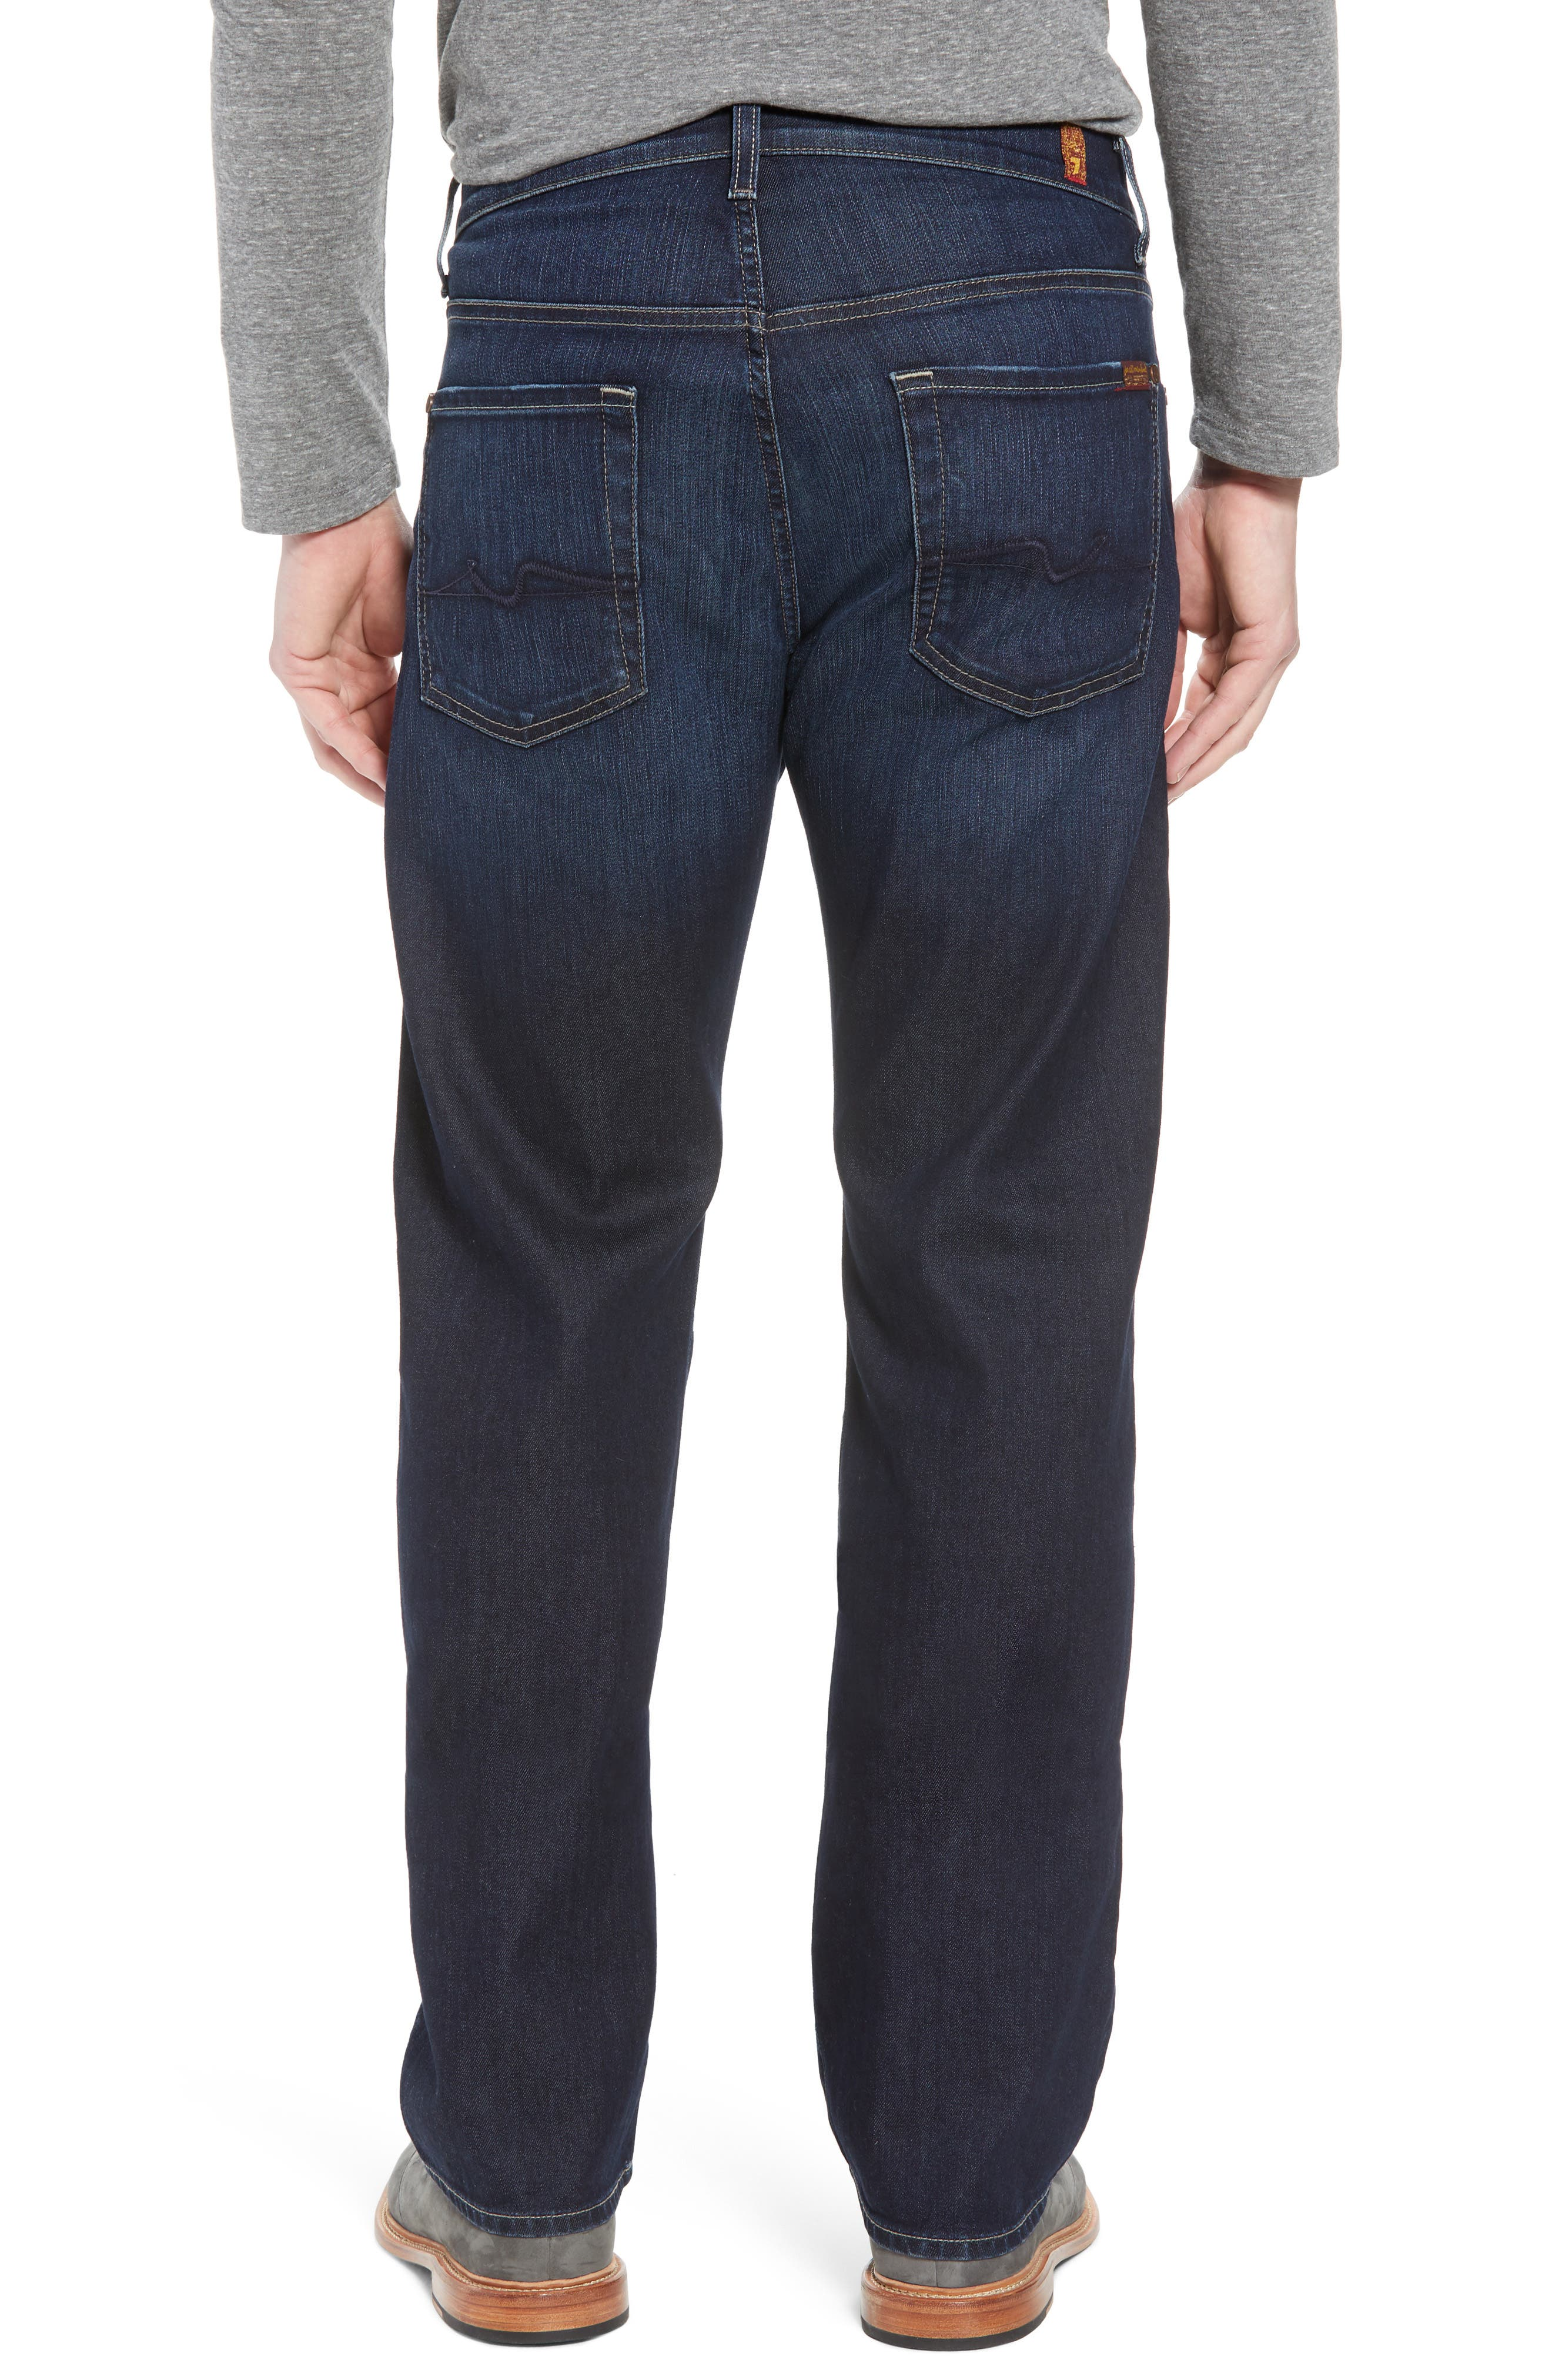 Airweft Austyn Relaxed Straight Leg Jeans,                             Alternate thumbnail 2, color,                             Concierge